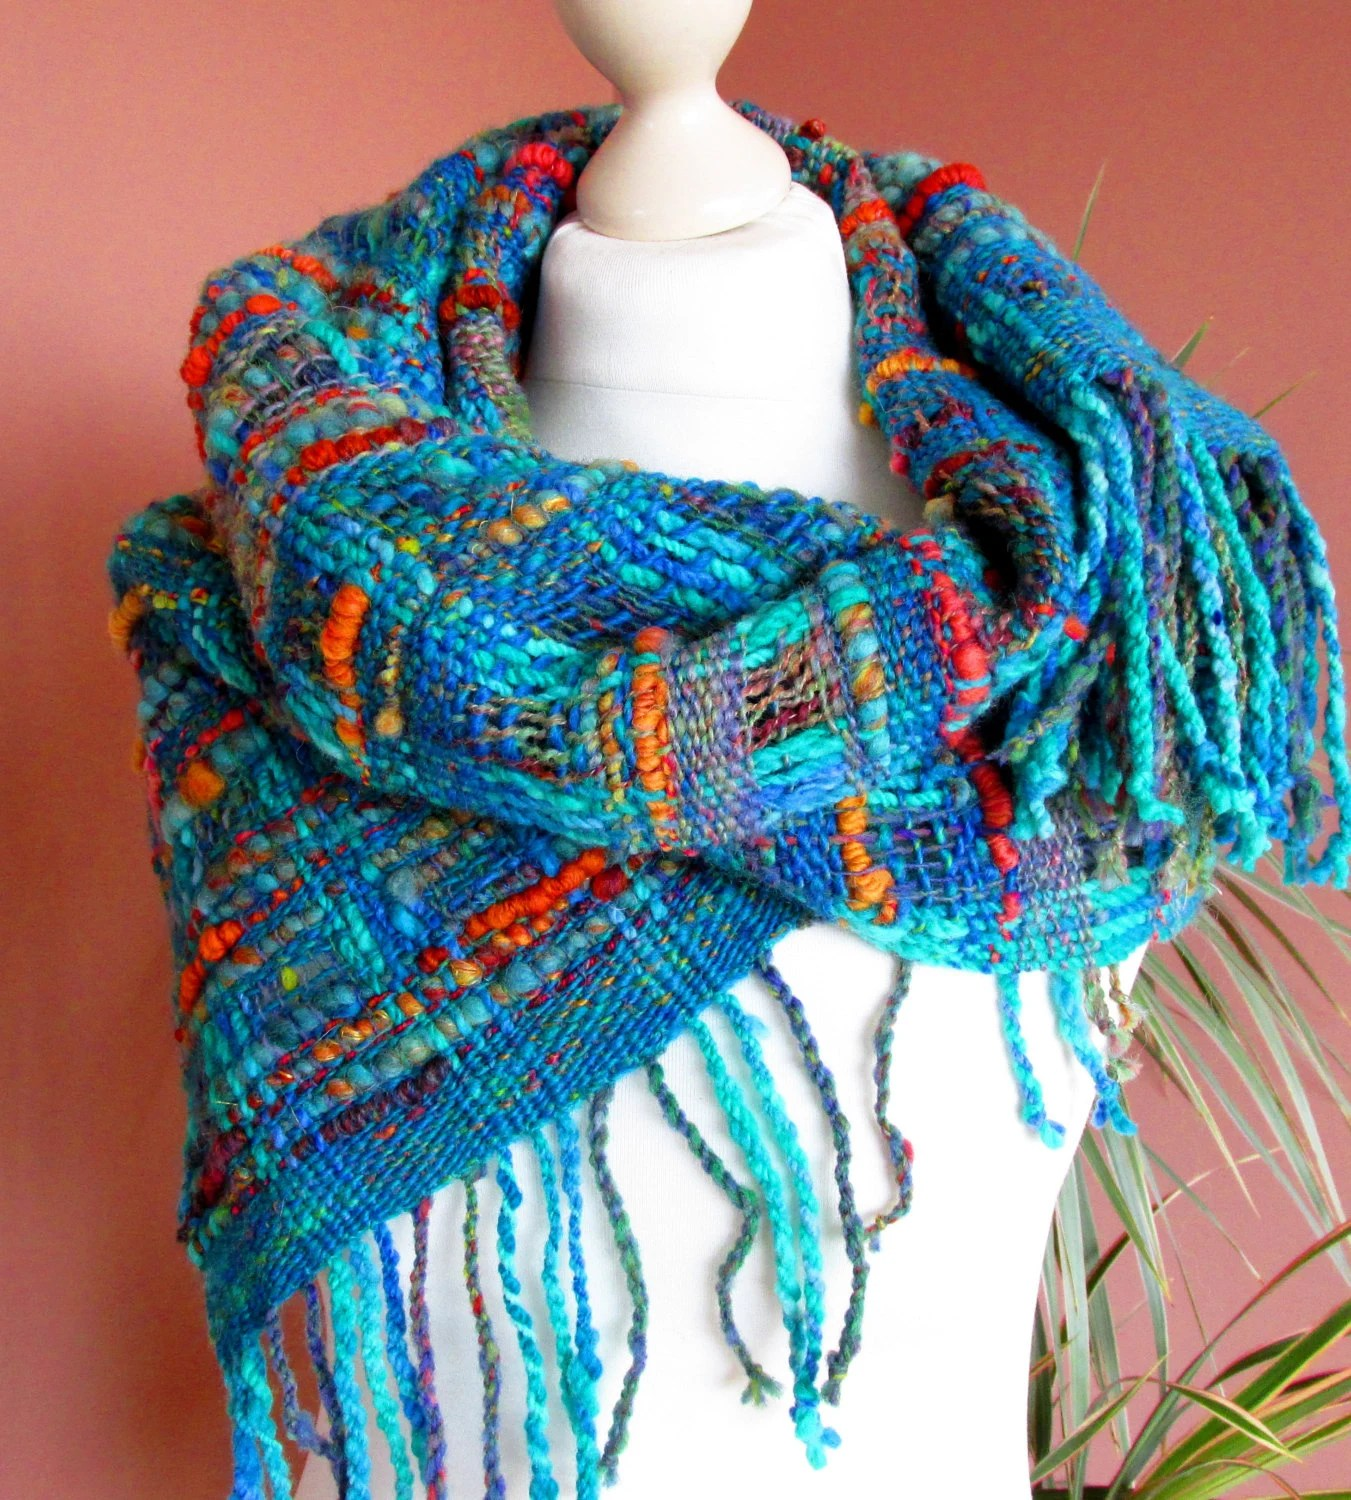 Rattan Yarn Handwoven Scarf Made Of Handspun Art Yarn.hand Woven Shawl.art